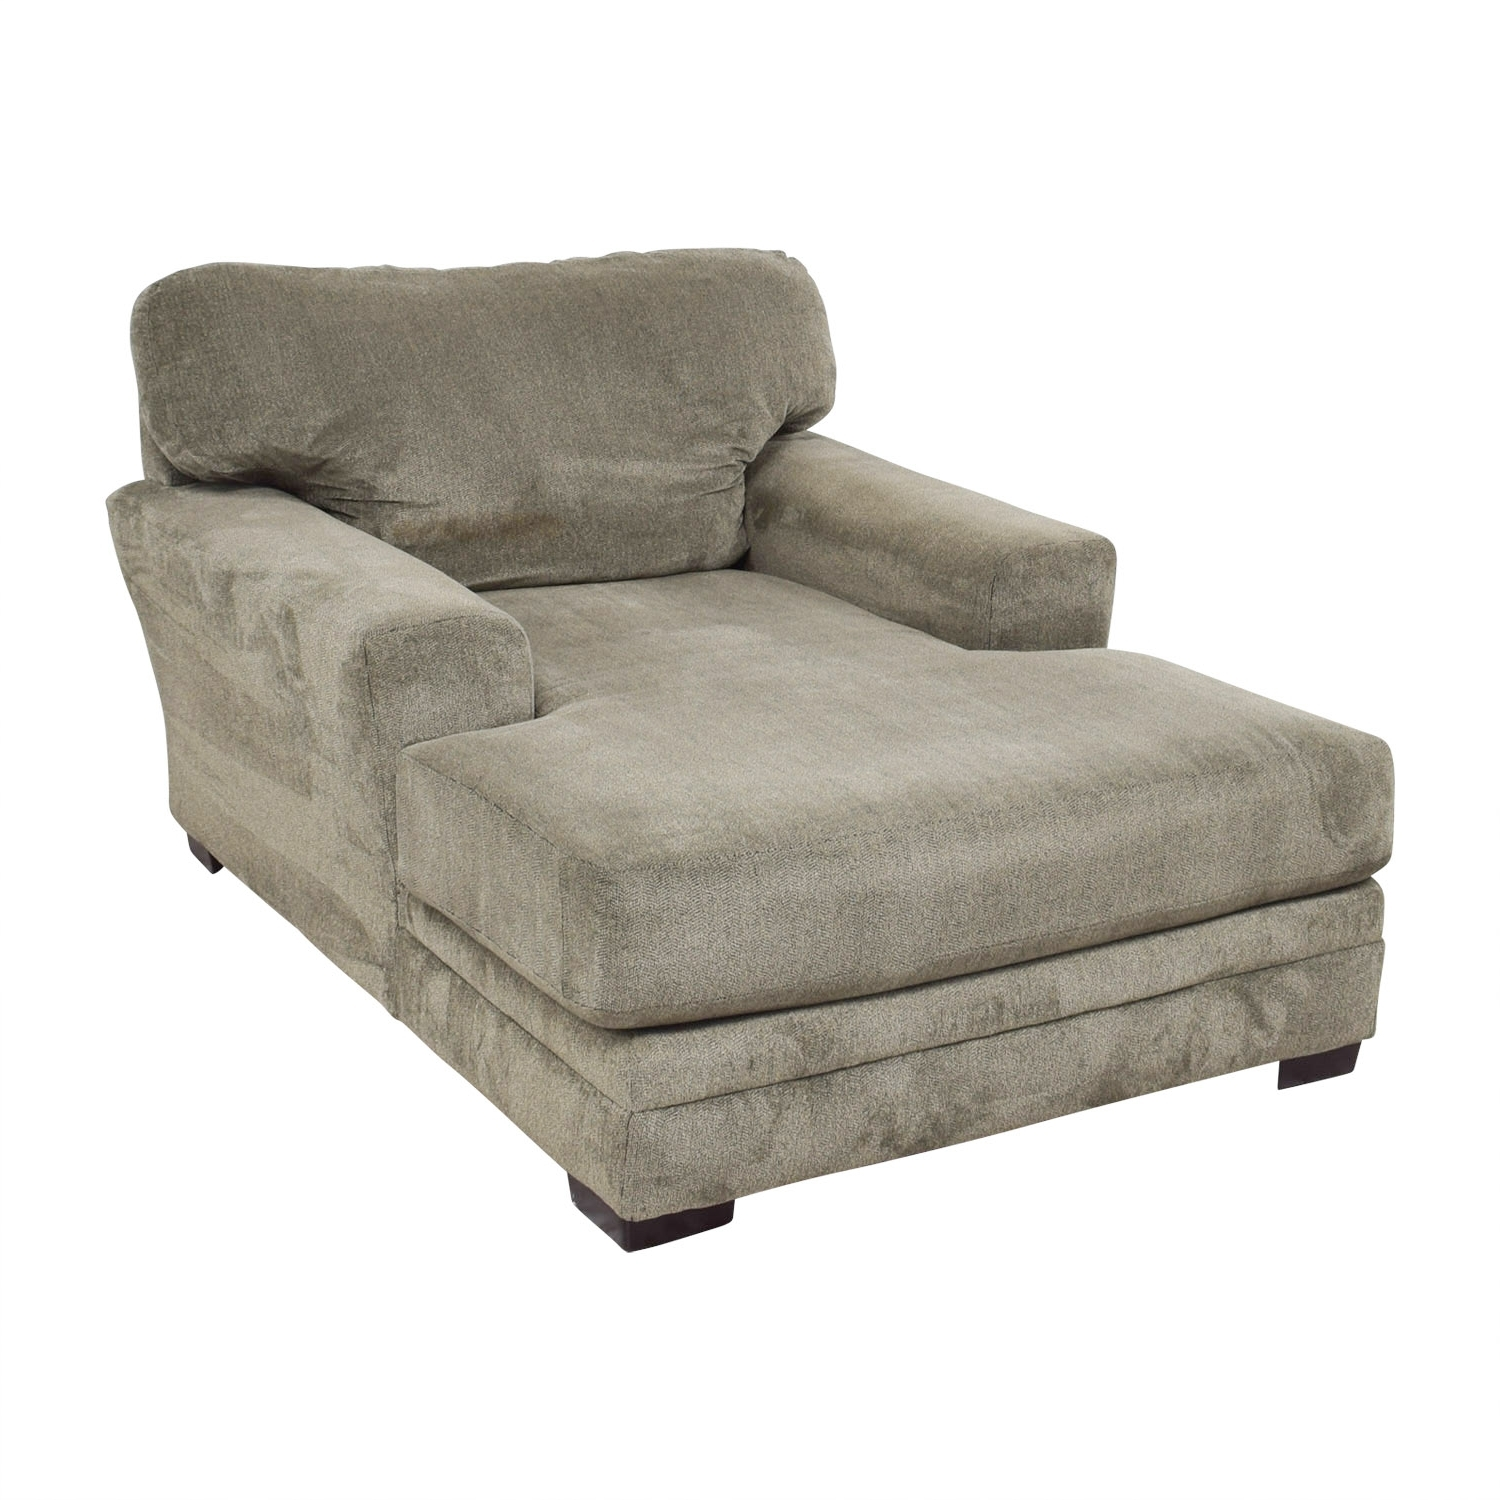 [%81% Off – Bob's Furniture Bob's Furniture Grey Chaise Lounge / Sofas In Most Current Gray Chaises|Gray Chaises Throughout Fashionable 81% Off – Bob's Furniture Bob's Furniture Grey Chaise Lounge / Sofas|Fashionable Gray Chaises In 81% Off – Bob's Furniture Bob's Furniture Grey Chaise Lounge / Sofas|Well Known 81% Off – Bob's Furniture Bob's Furniture Grey Chaise Lounge / Sofas Inside Gray Chaises%] (View 5 of 15)